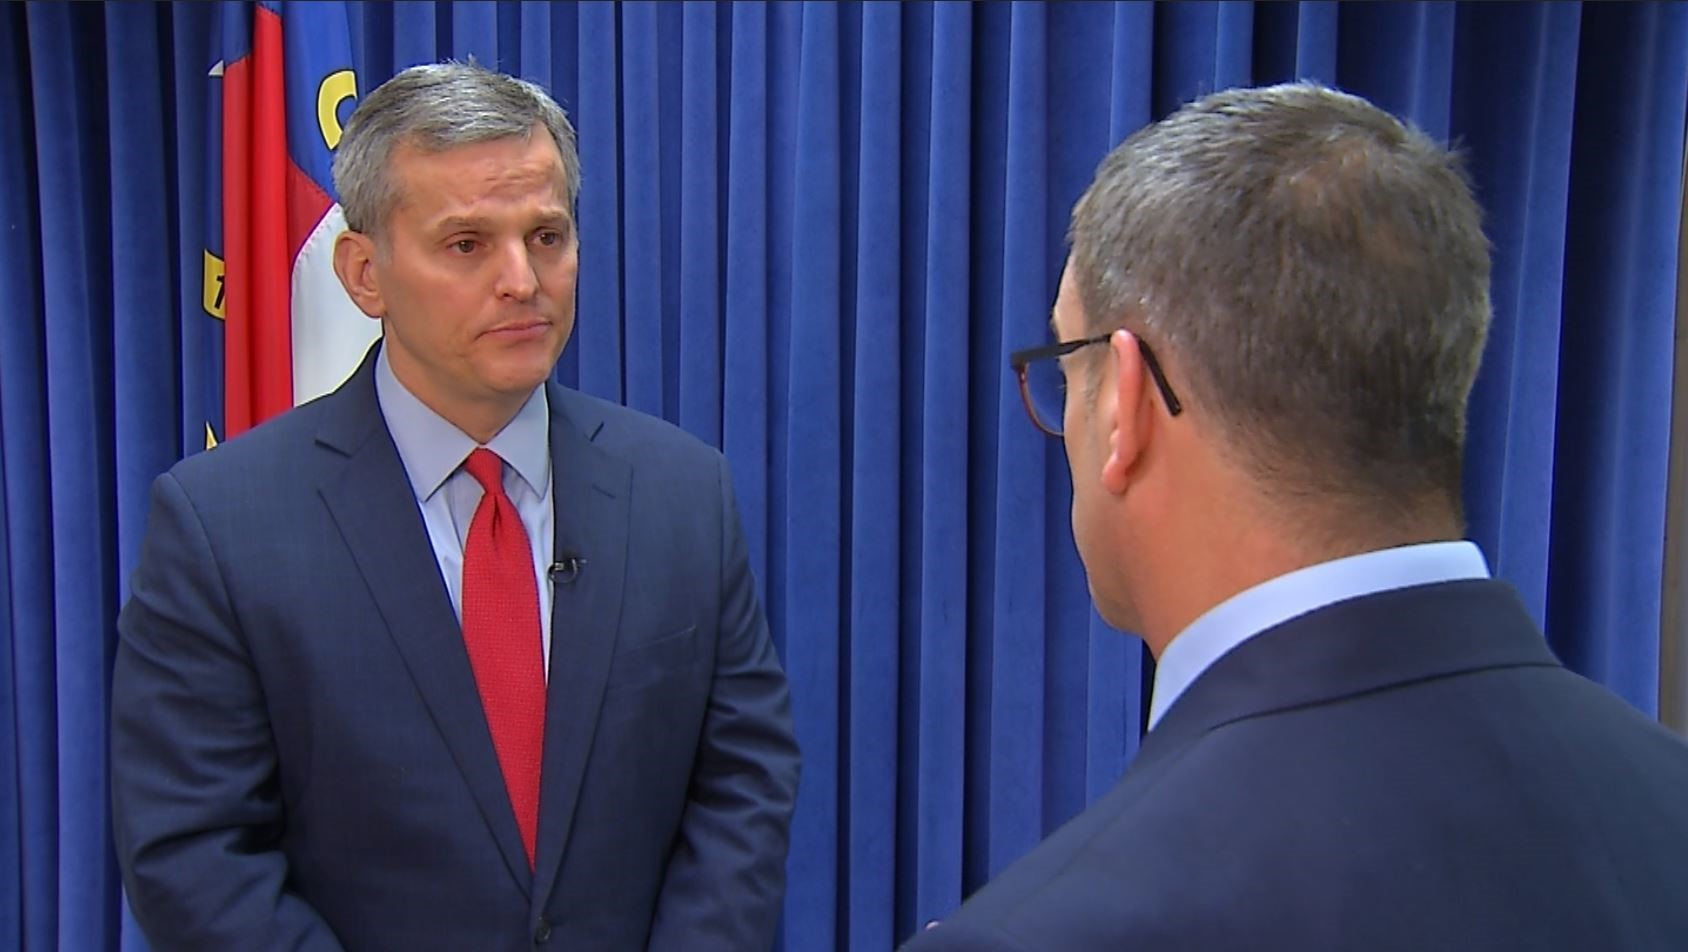 Russ Bowen interviews Attorney General Josh Stein about delay in testing sexual assault kits.